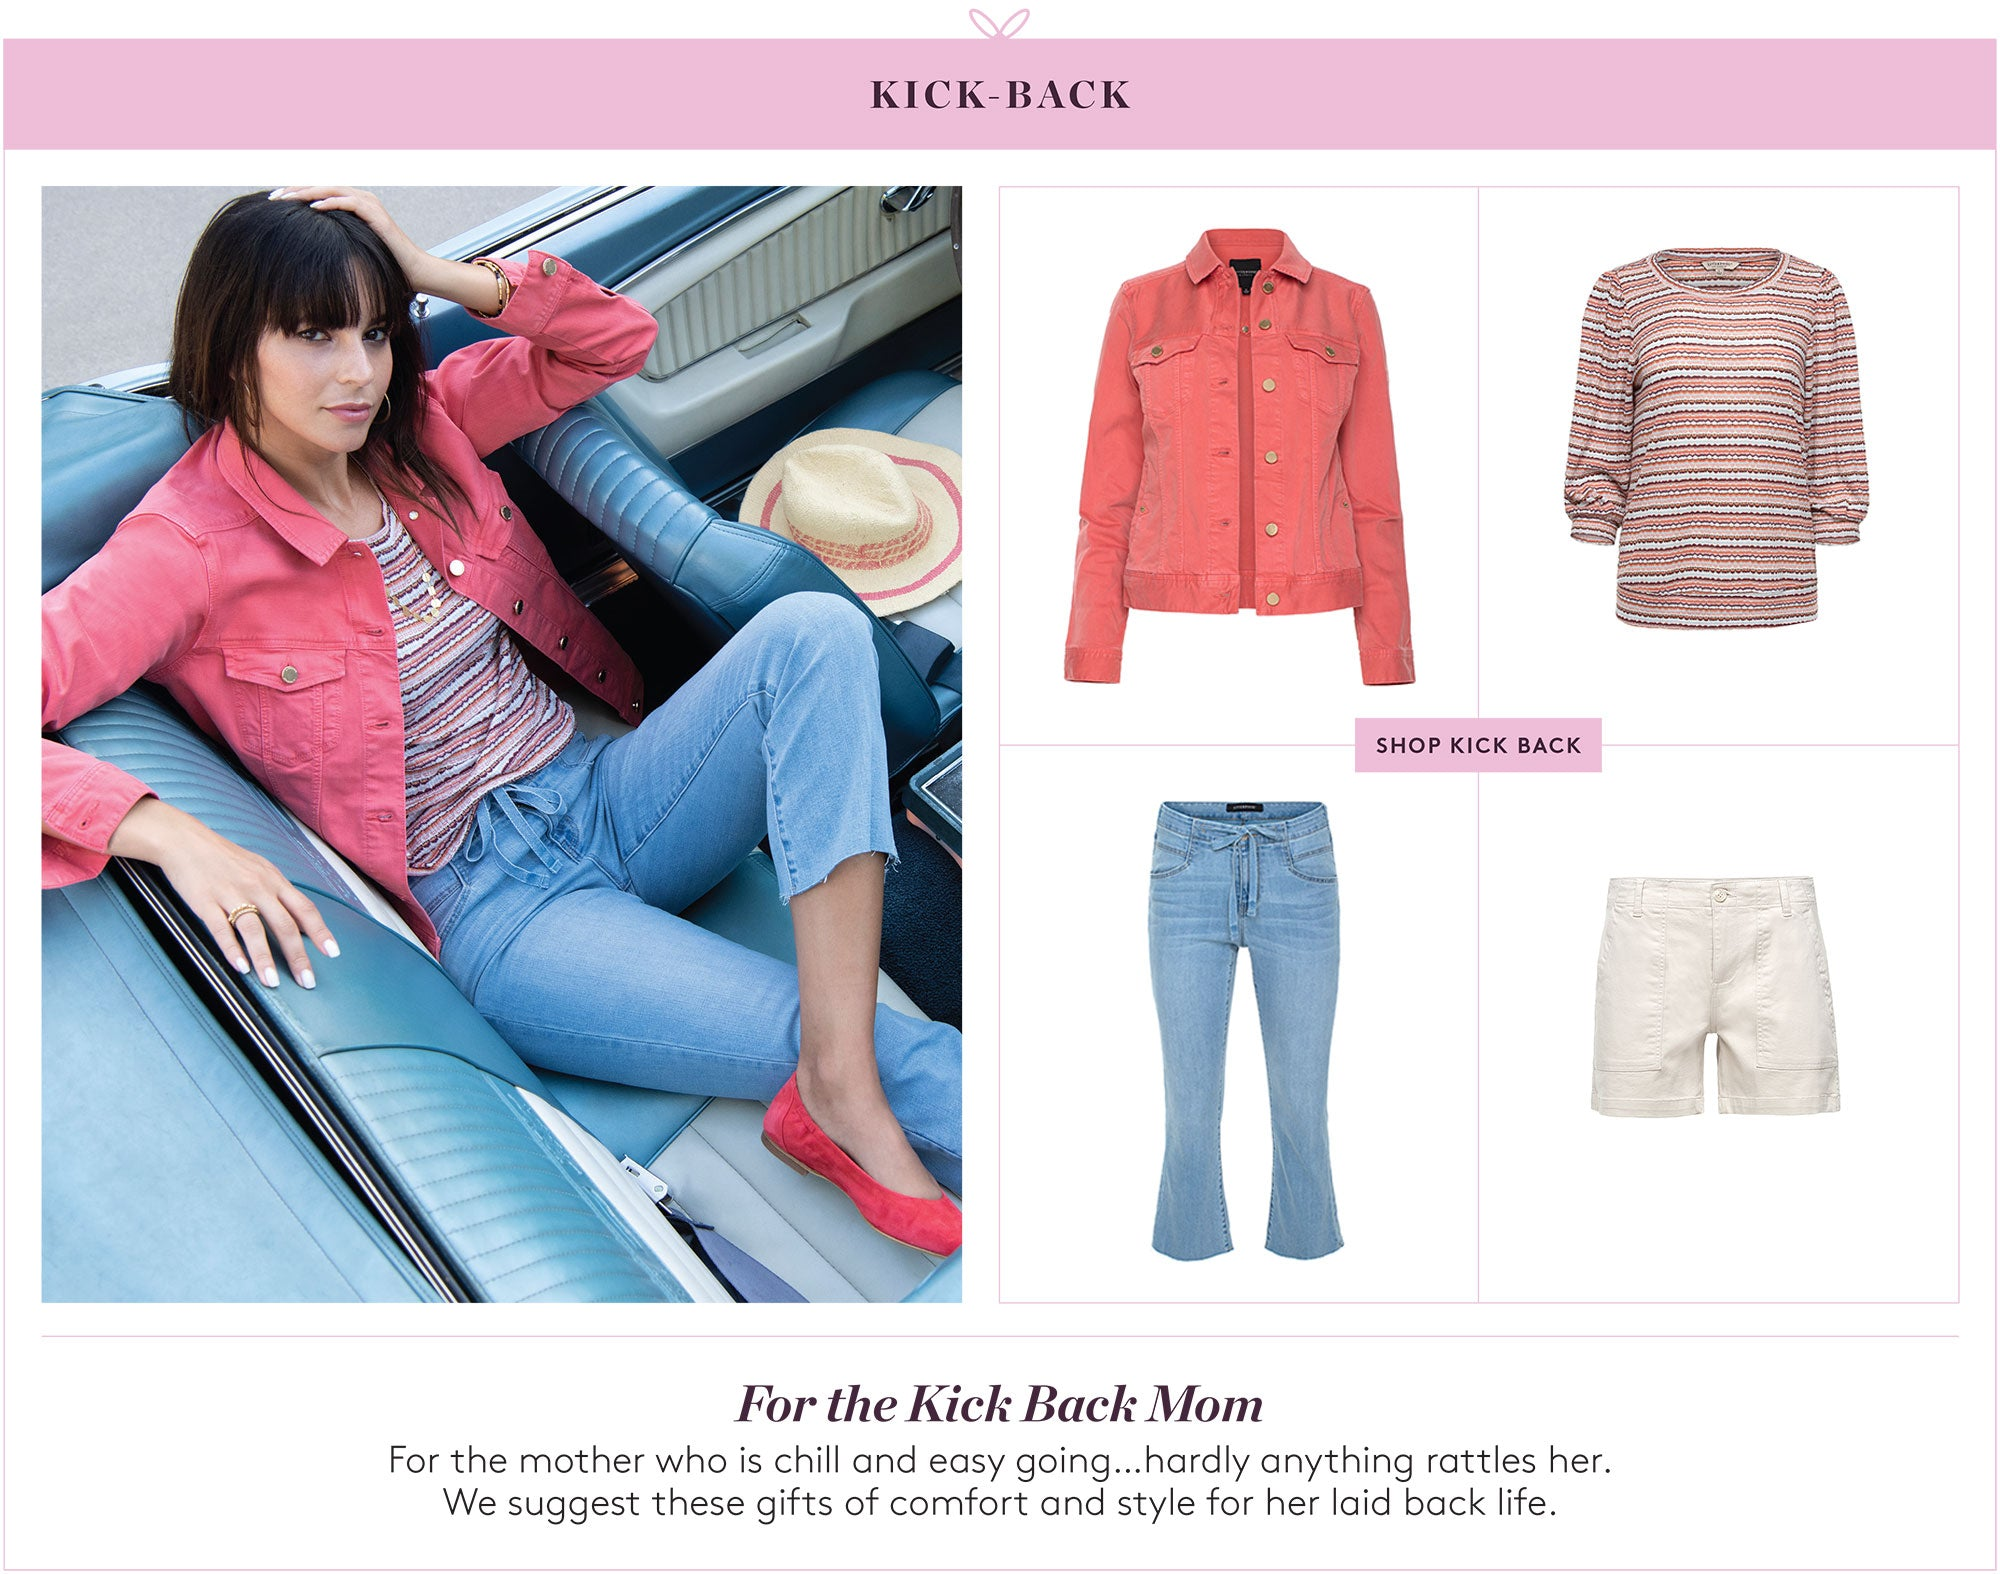 For the Kick Back Mom: For the mother who is chill and easy going...hardly anything rattles her.  We suggest these gifts of comfort and style for her laid back life.